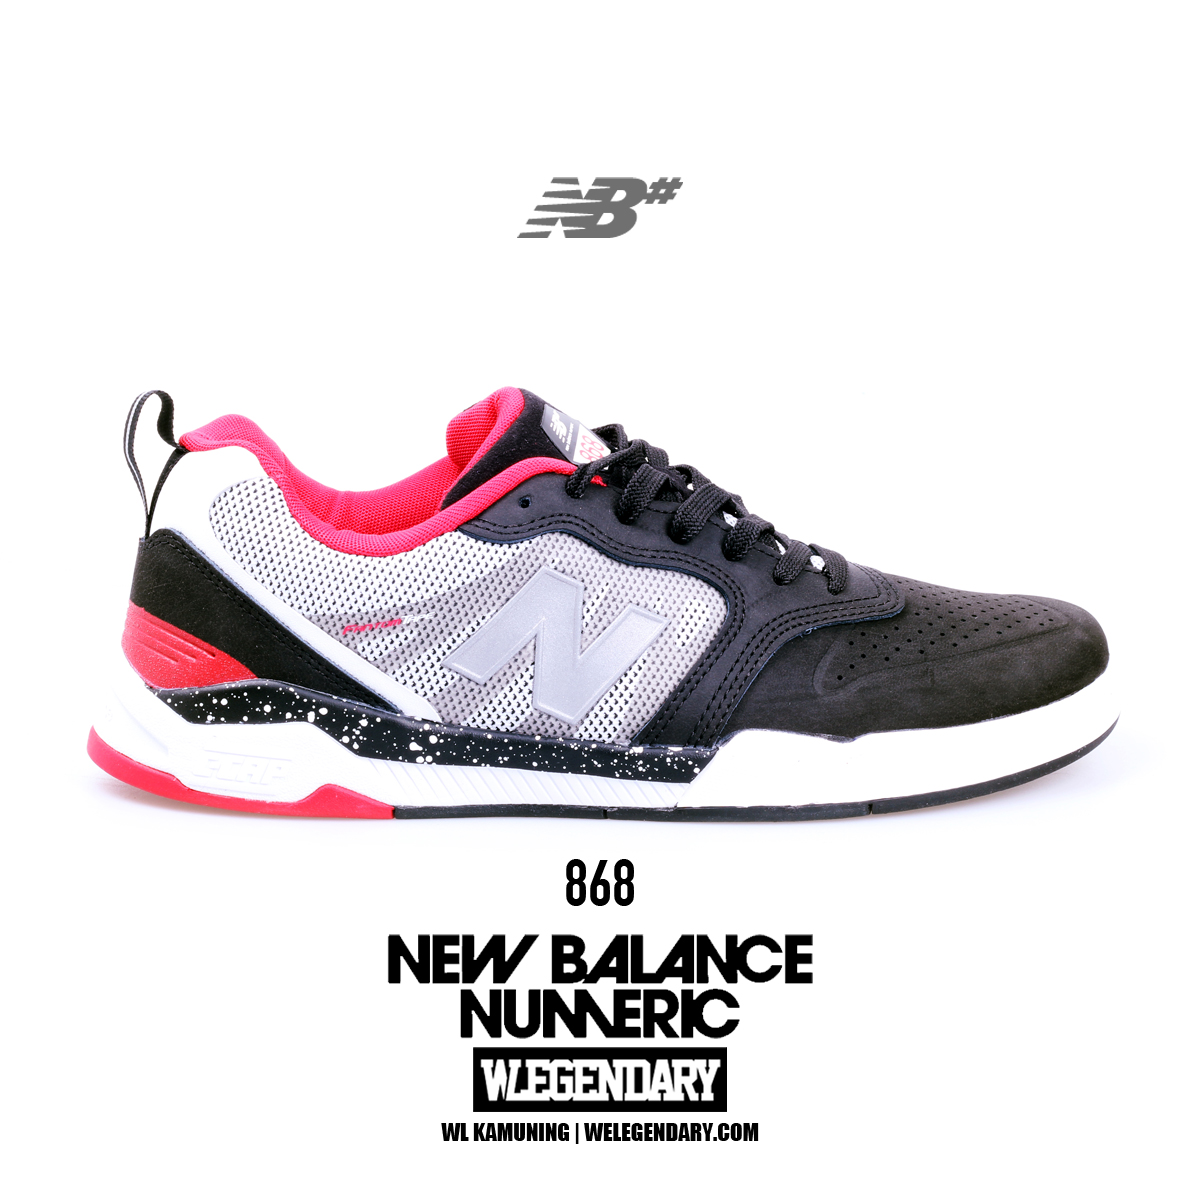 1db8a76b48b0 Numeric shoes blend skateboarding tech with the heritage and quality that  New Balance is famous for. From low-top to mid-top and court-inspired  styles